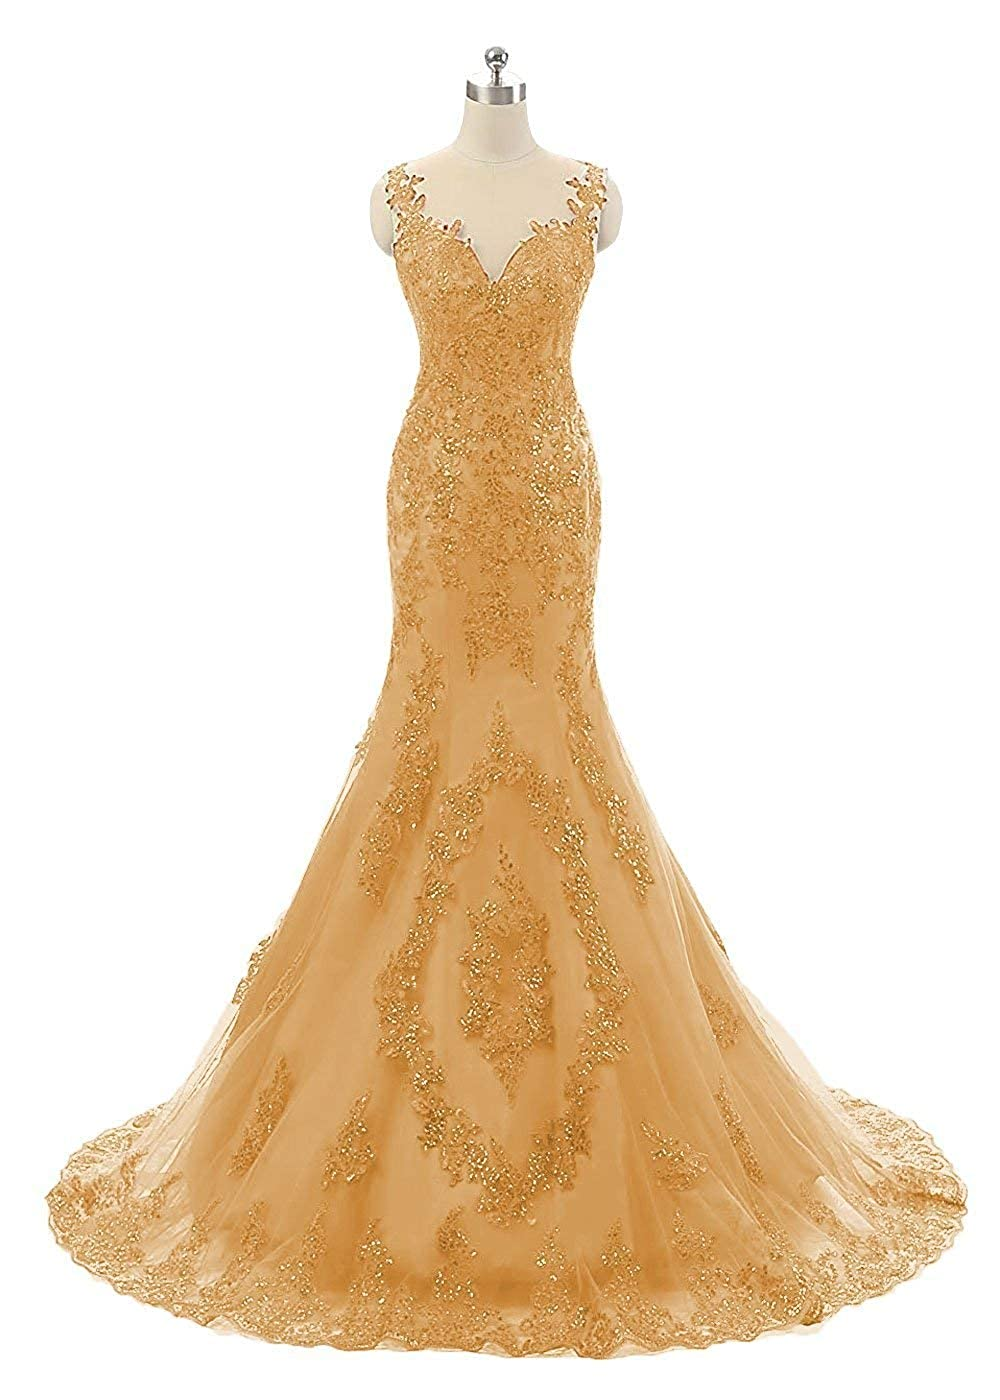 gold Sexy Sequin Mermaid Prom Dresses Long Lace Backless Spaghetti Strap Womens Pageant Evening Party Gown